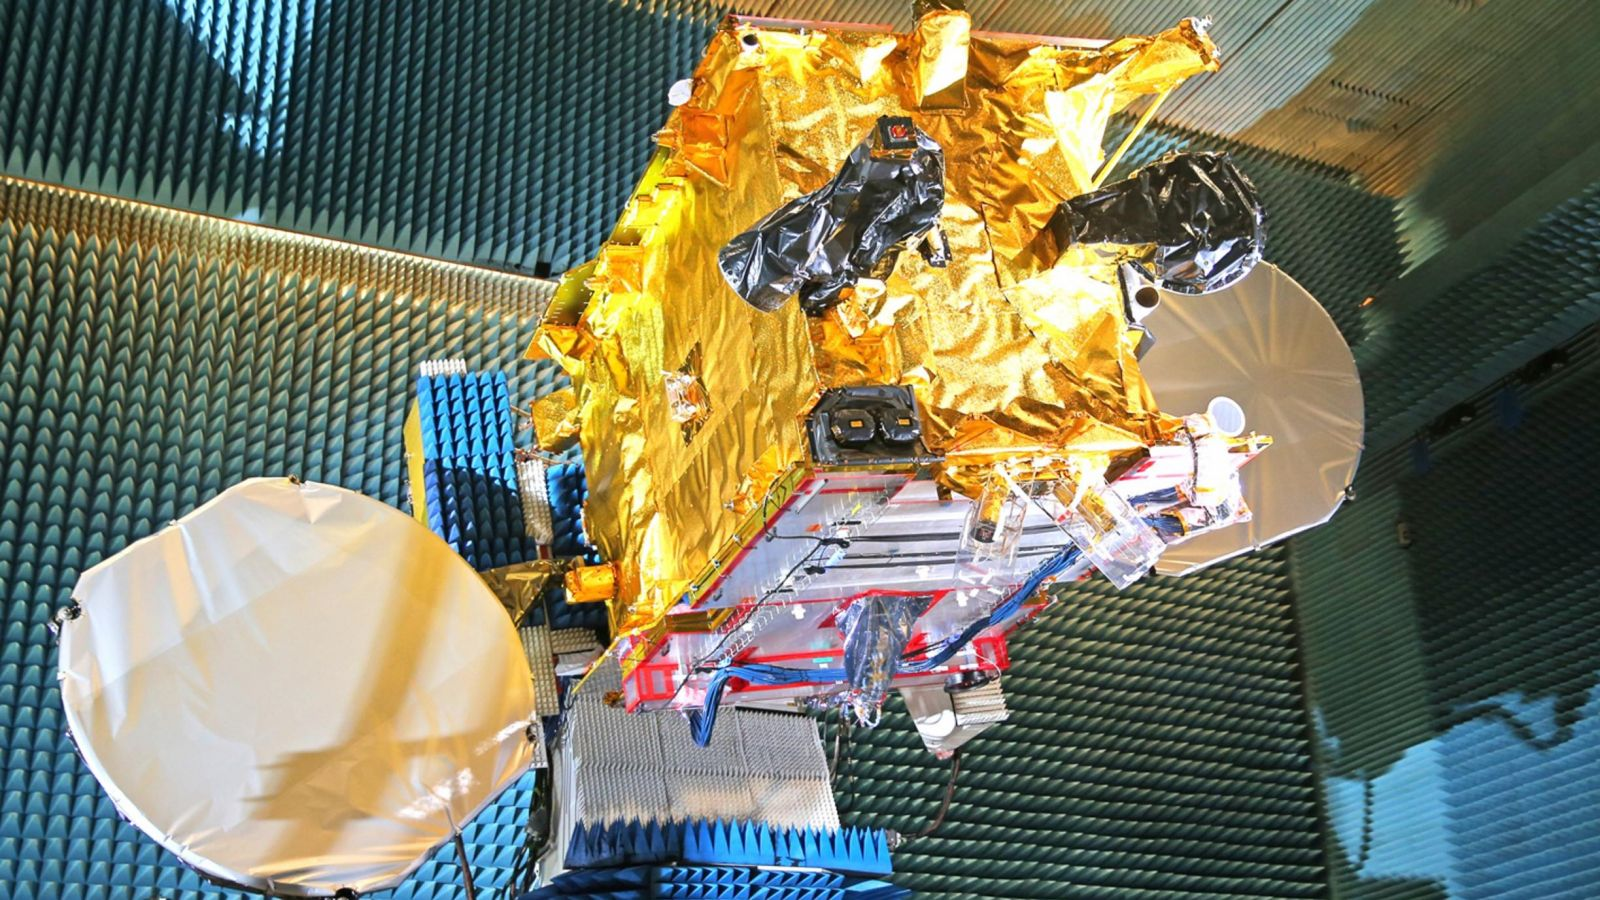 The SES-11 communications spacecraft undergoes testing. Photo Credit: SES